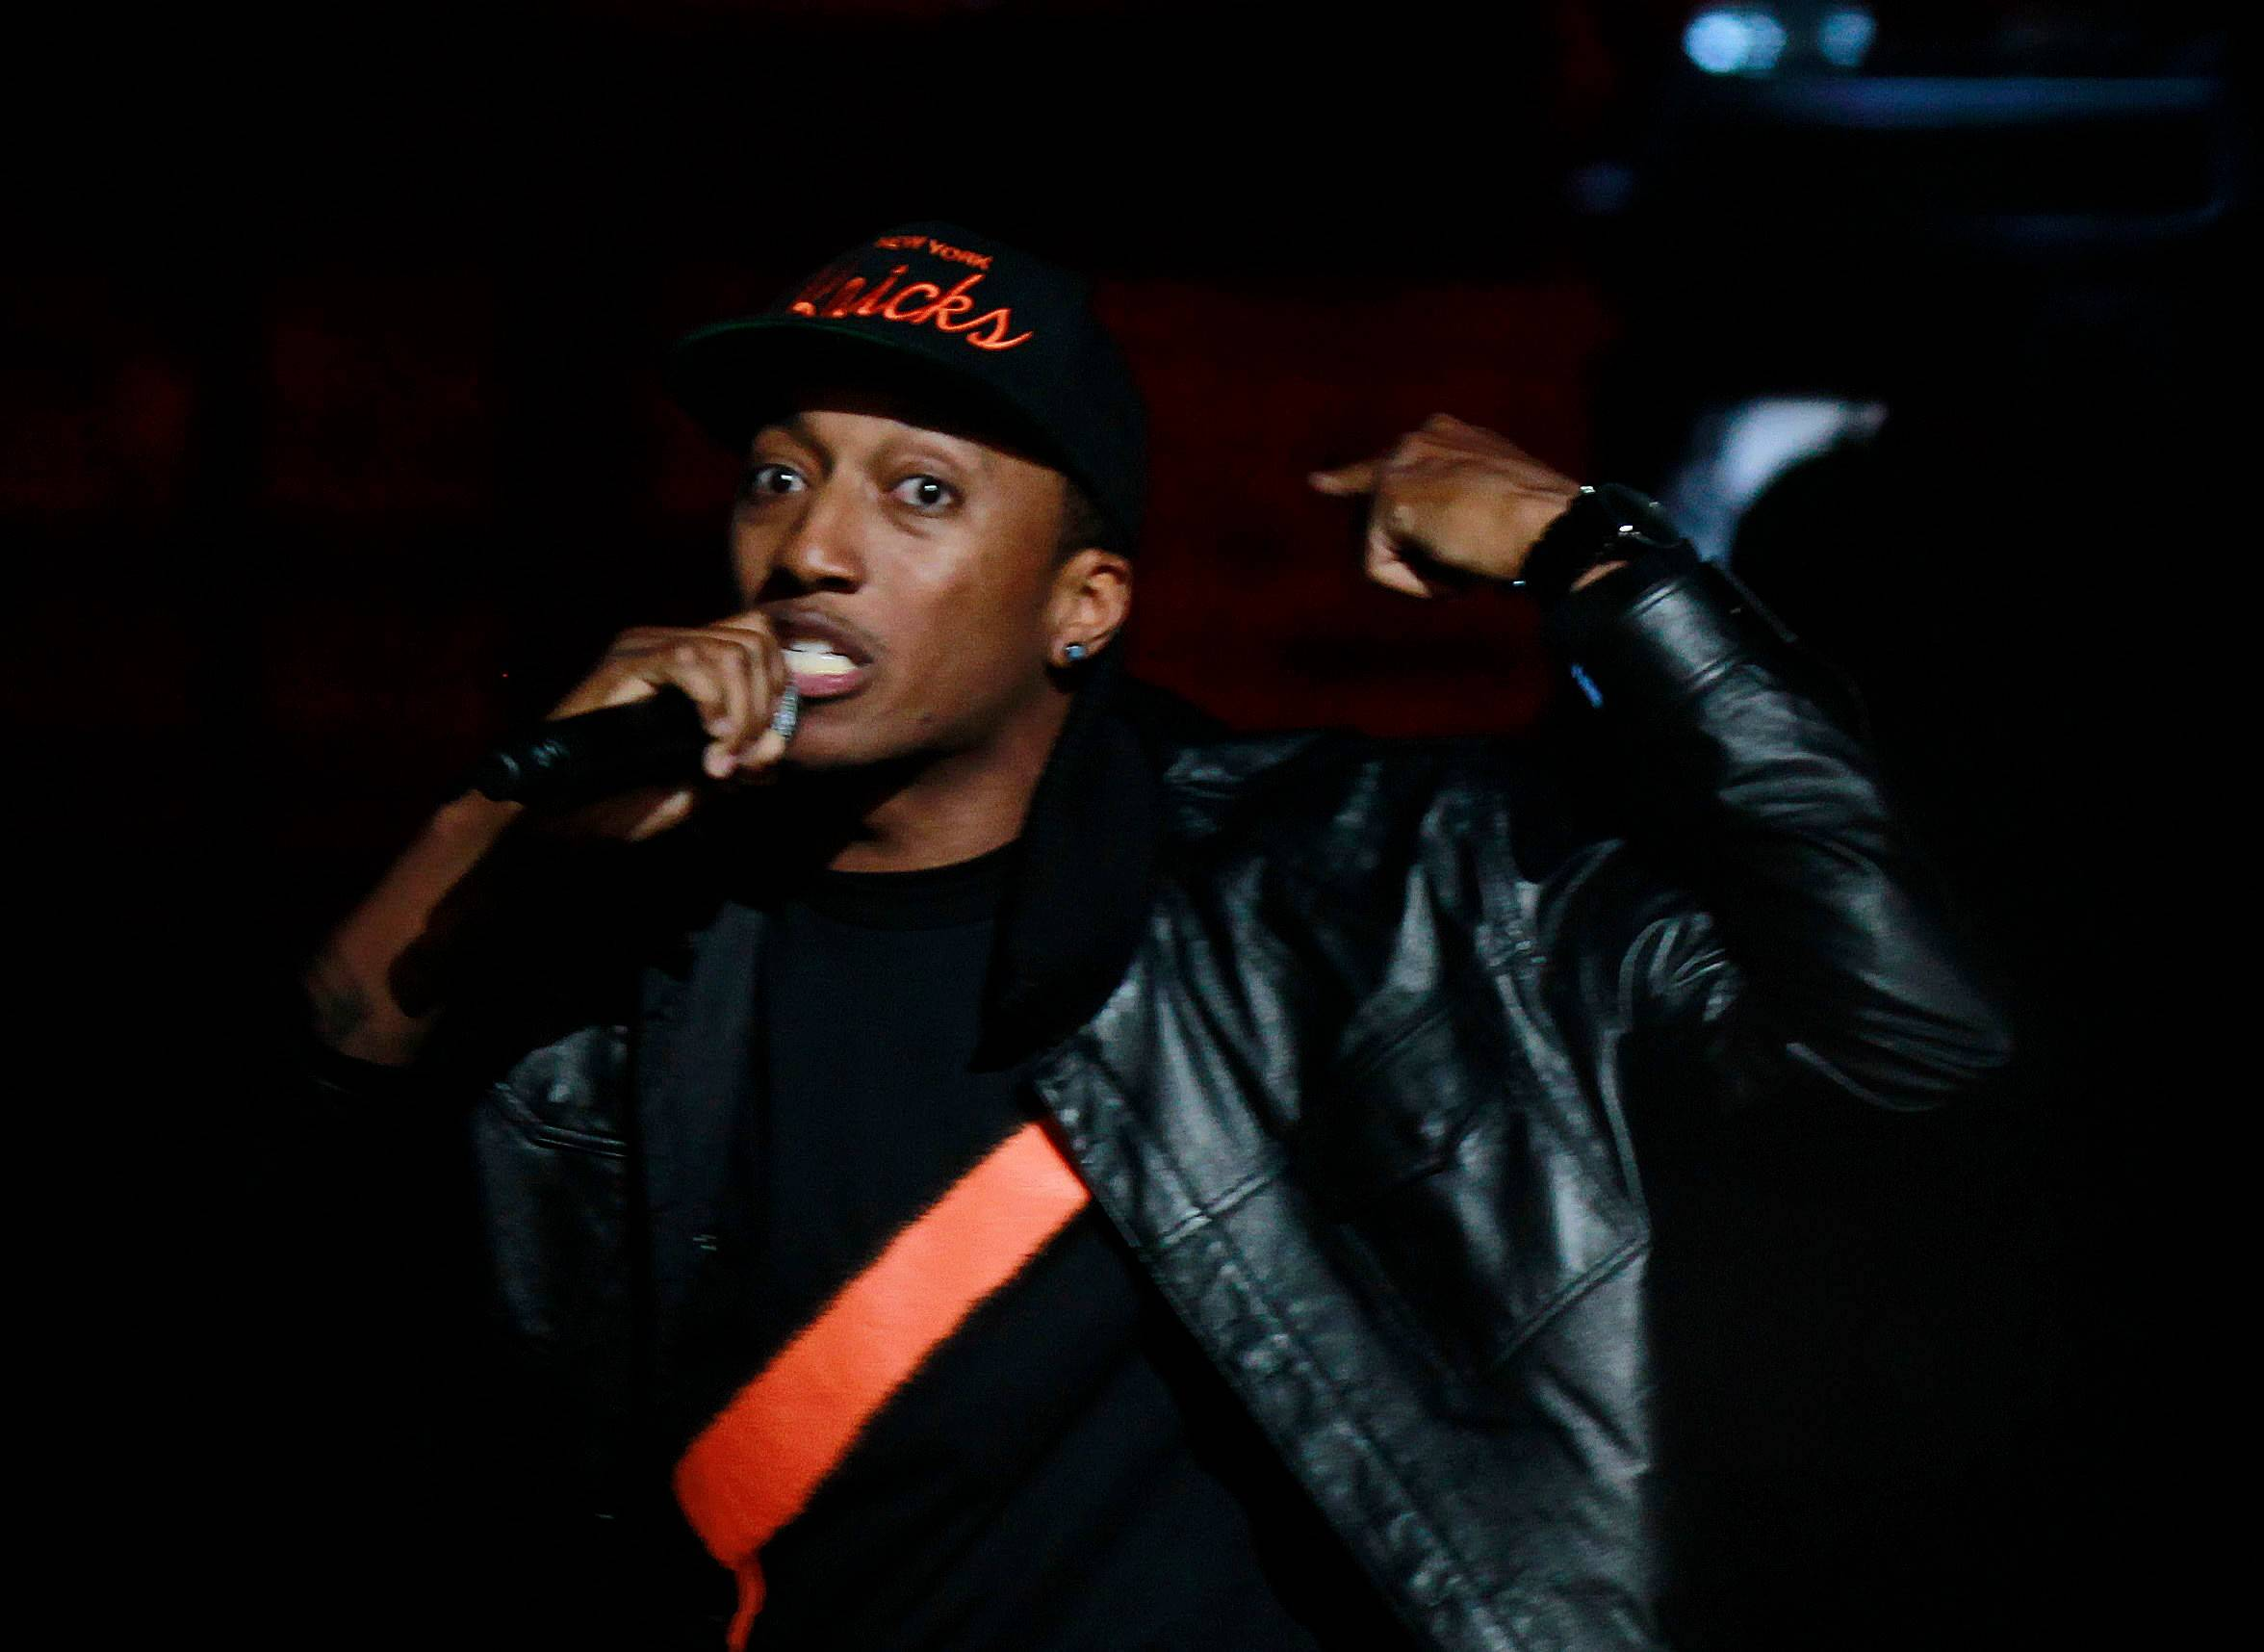 Christian rap artist Lecrae is on the bill for the Winter Jam 2014 Tour Spectacular at the Sears Centre Arena in Hoffman Estates on Saturday, March 29.